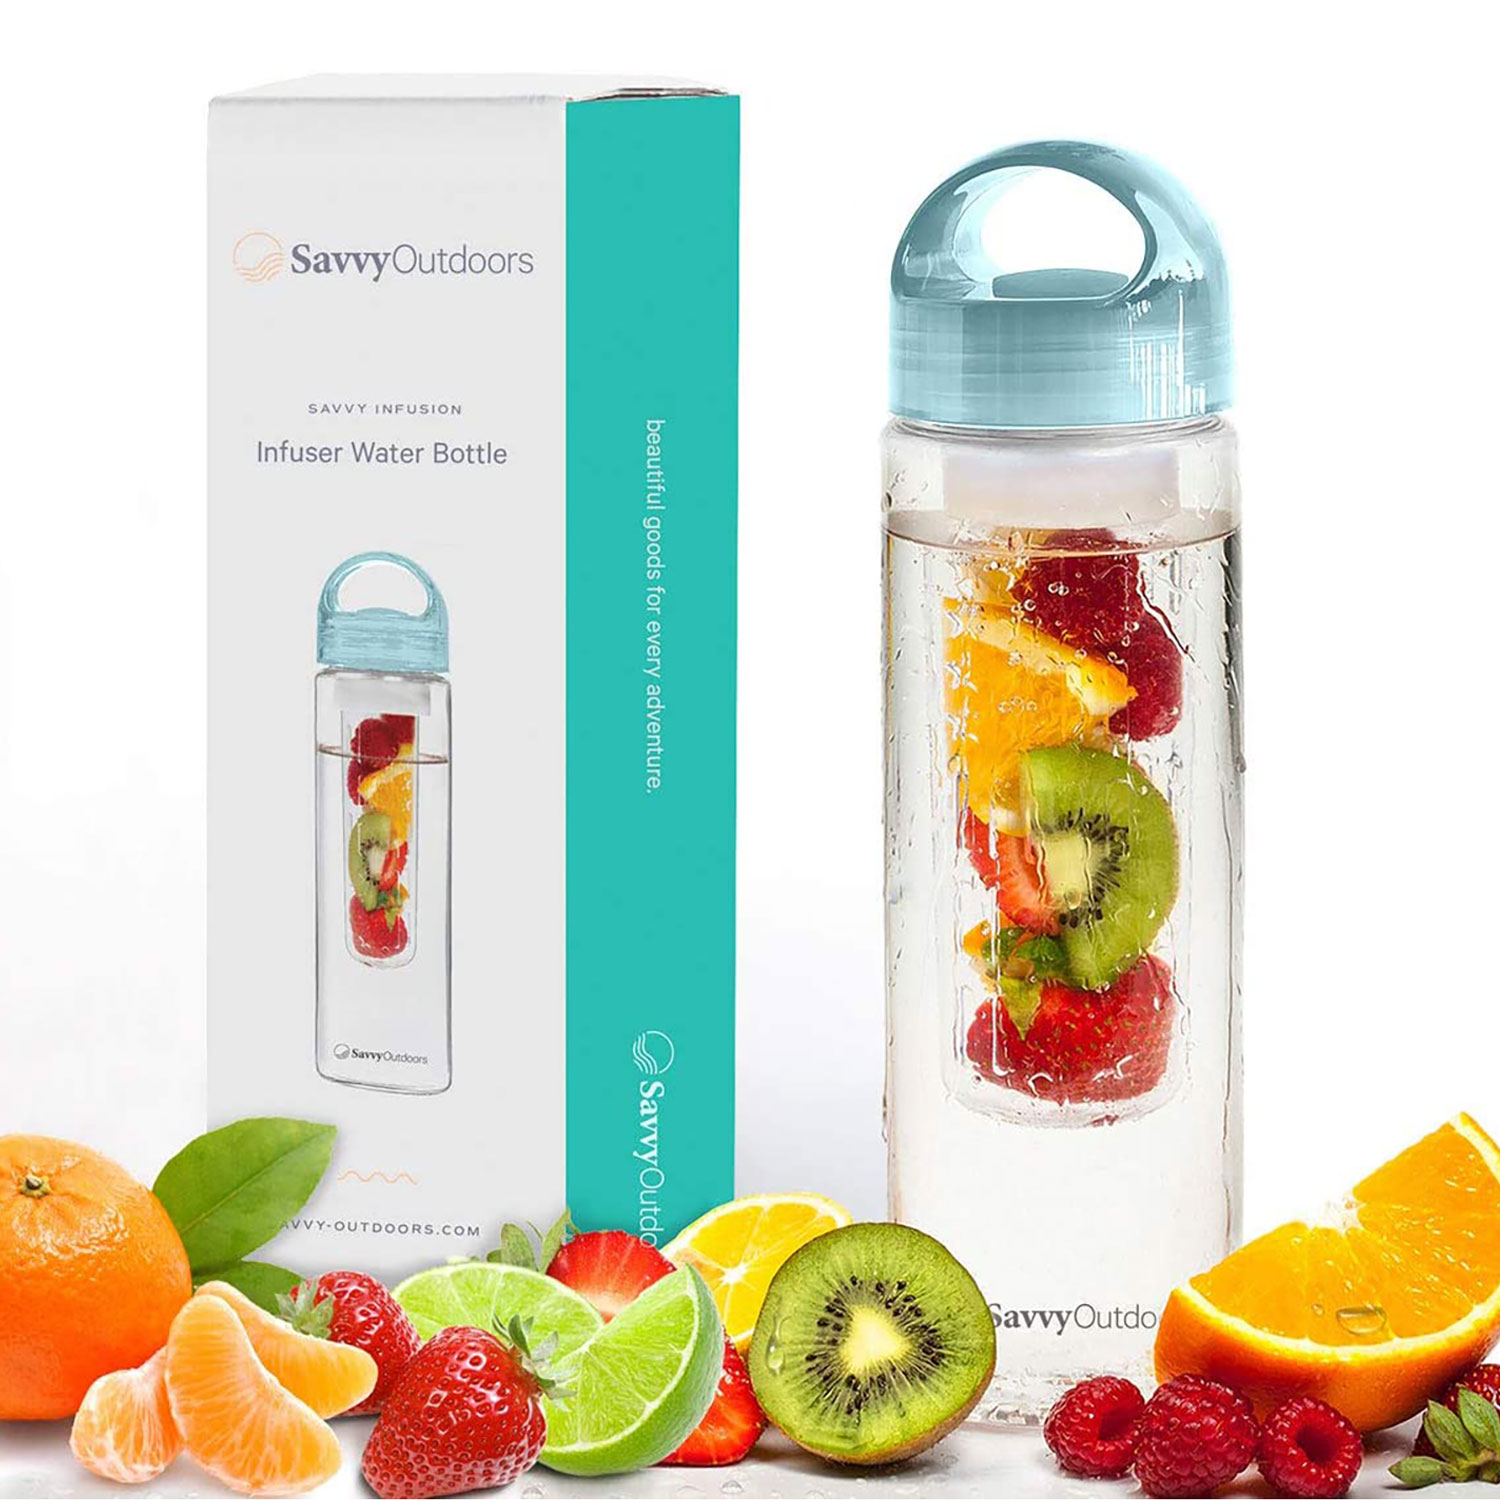 Savvy Outdoors infusion water bottle